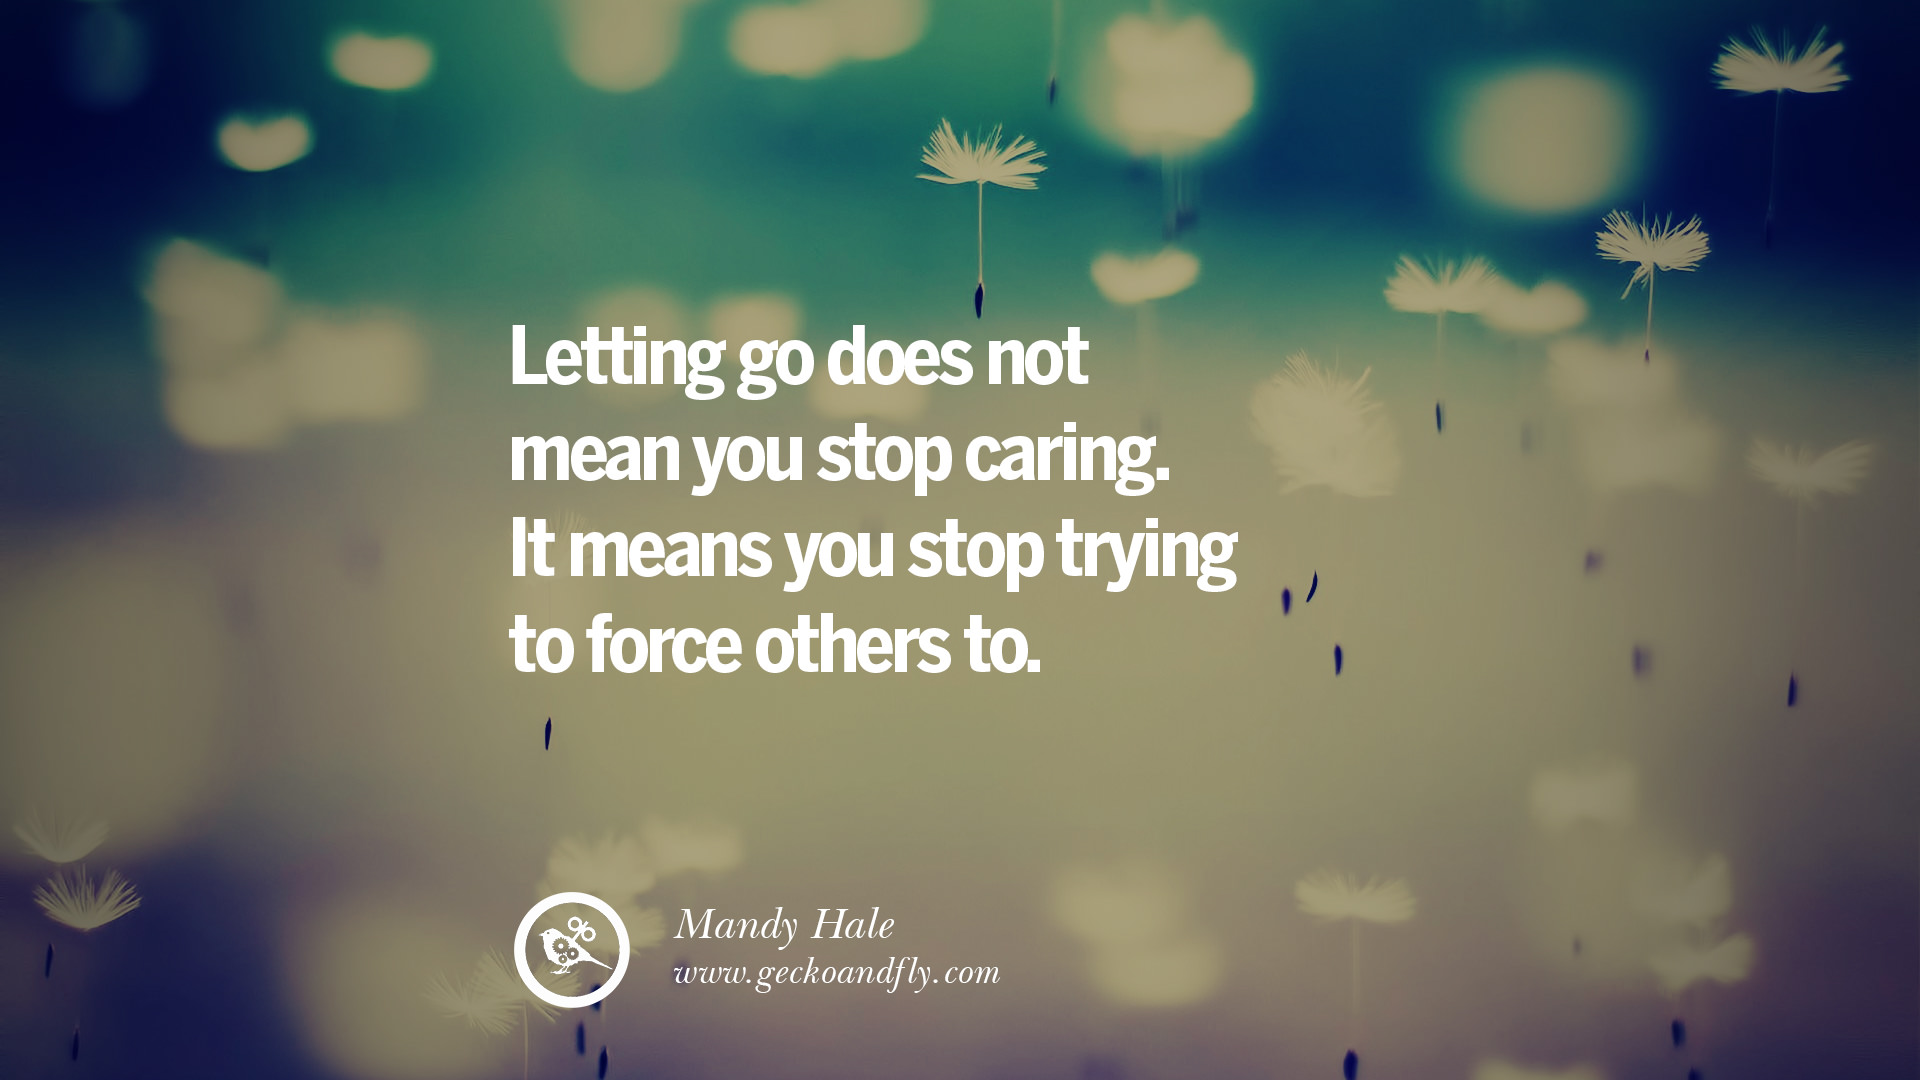 Moving On Quotes 50 Quotes About Moving On And Letting Go Of Relationship And Love